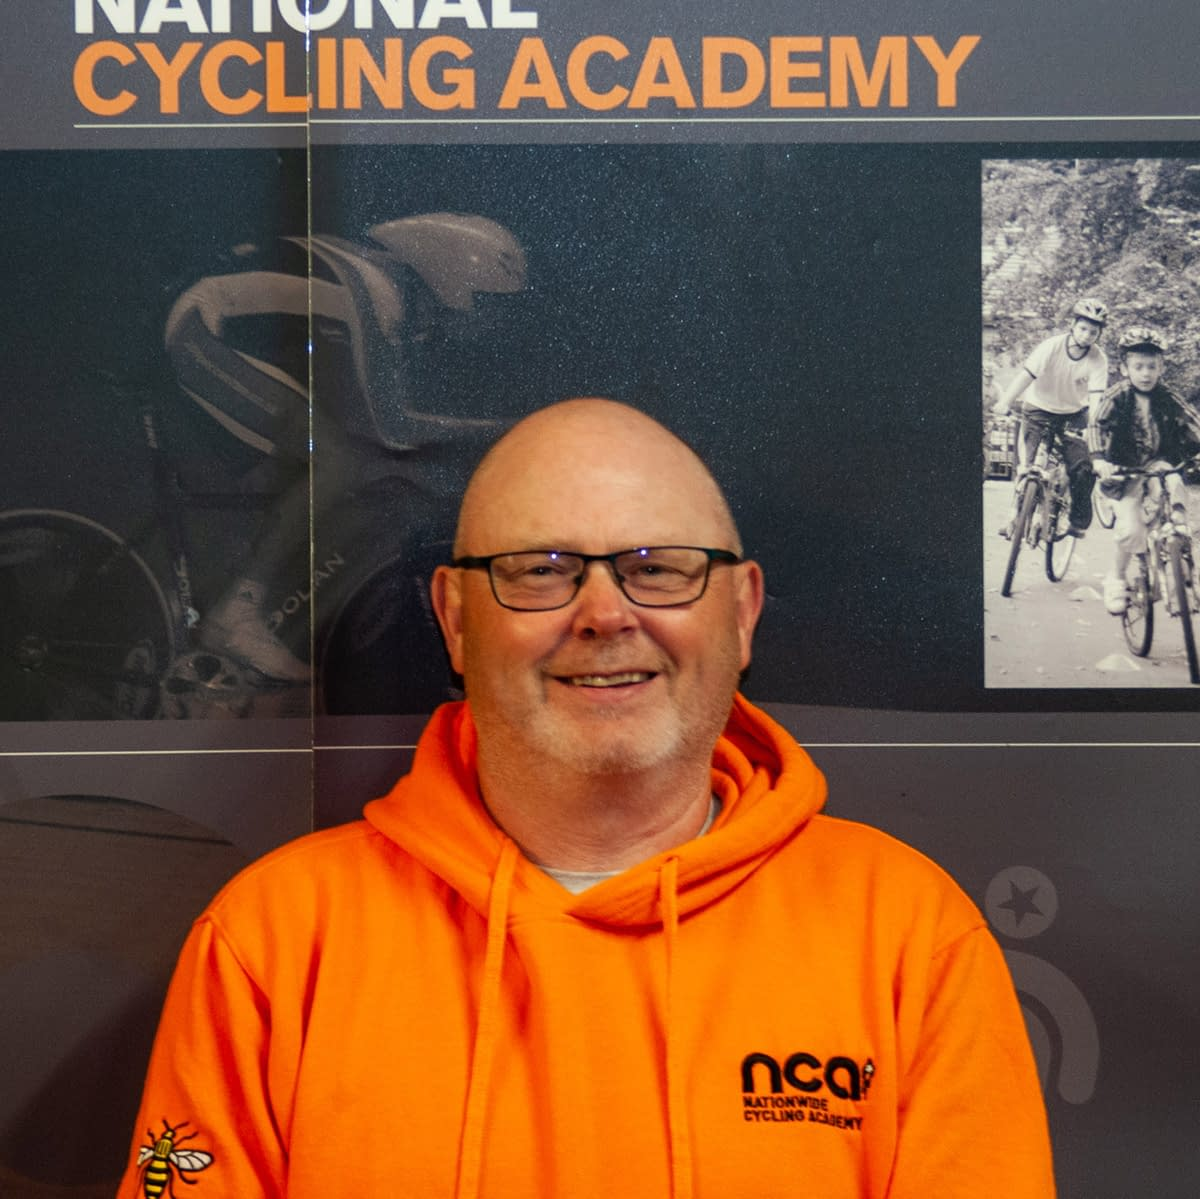 About NCA - Pete Staley